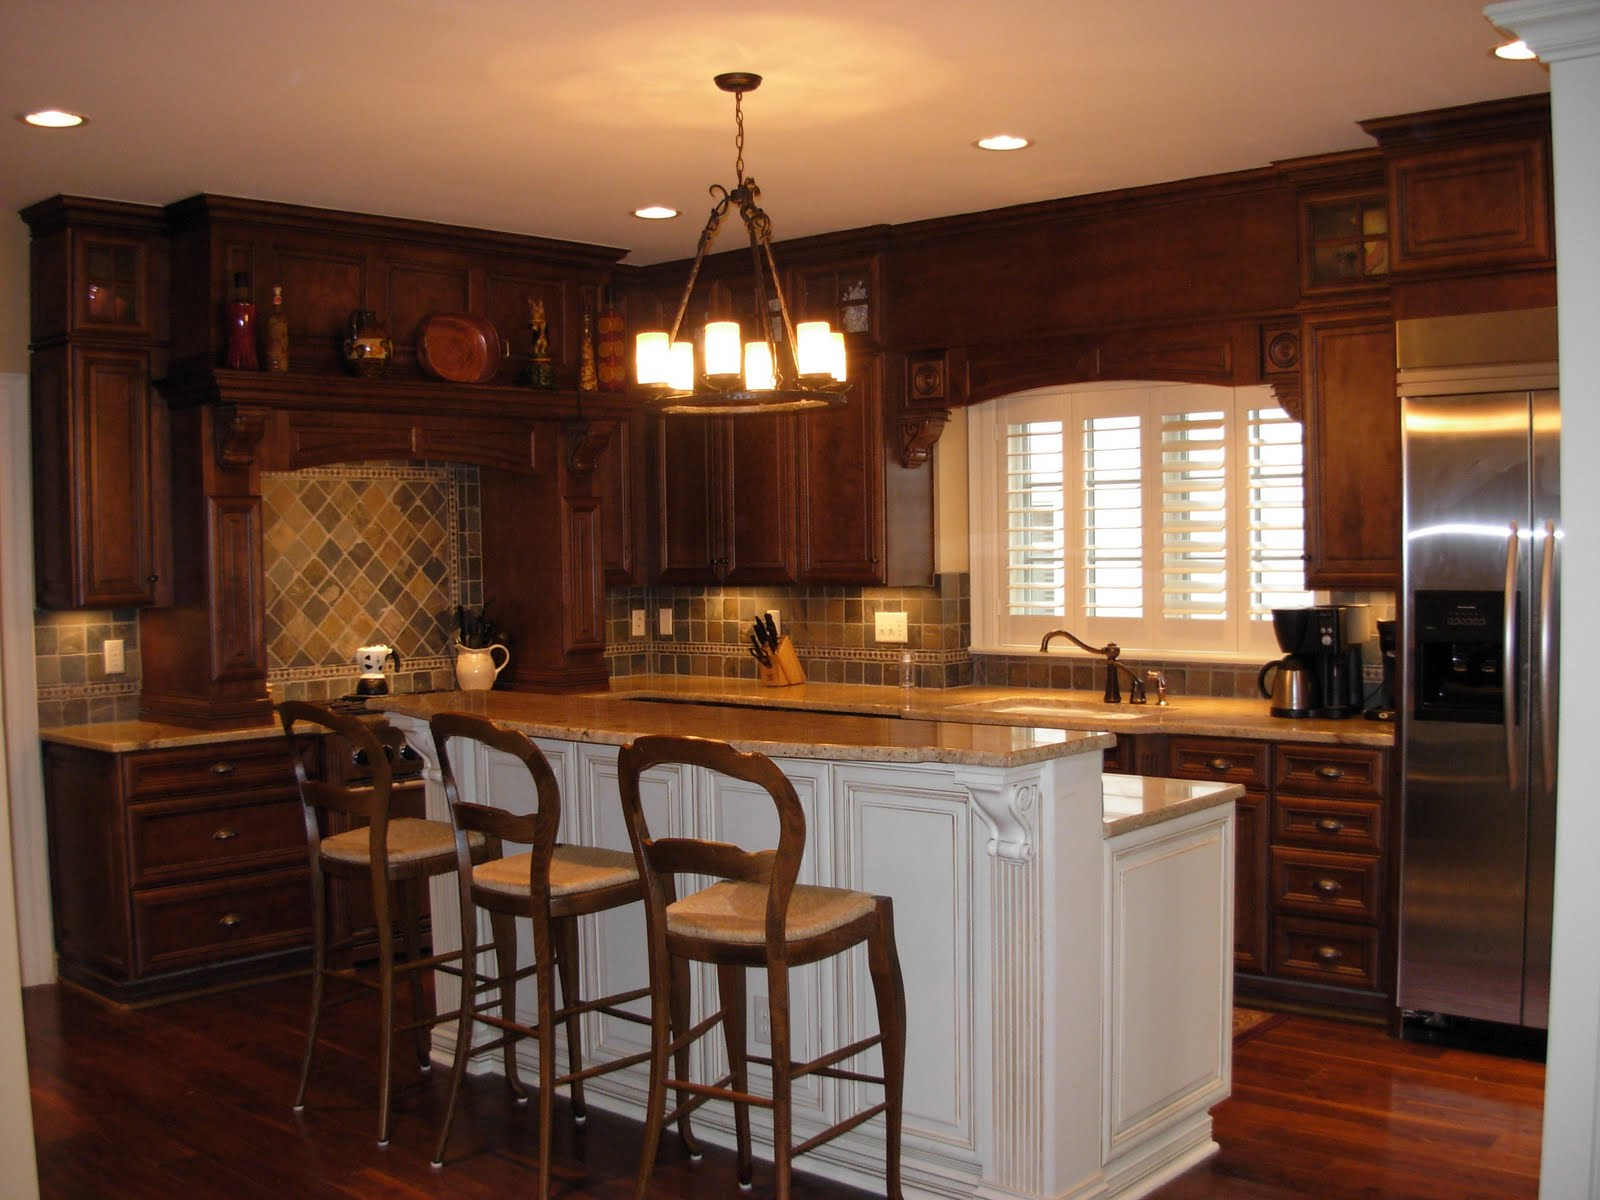 2012 for American remodeling